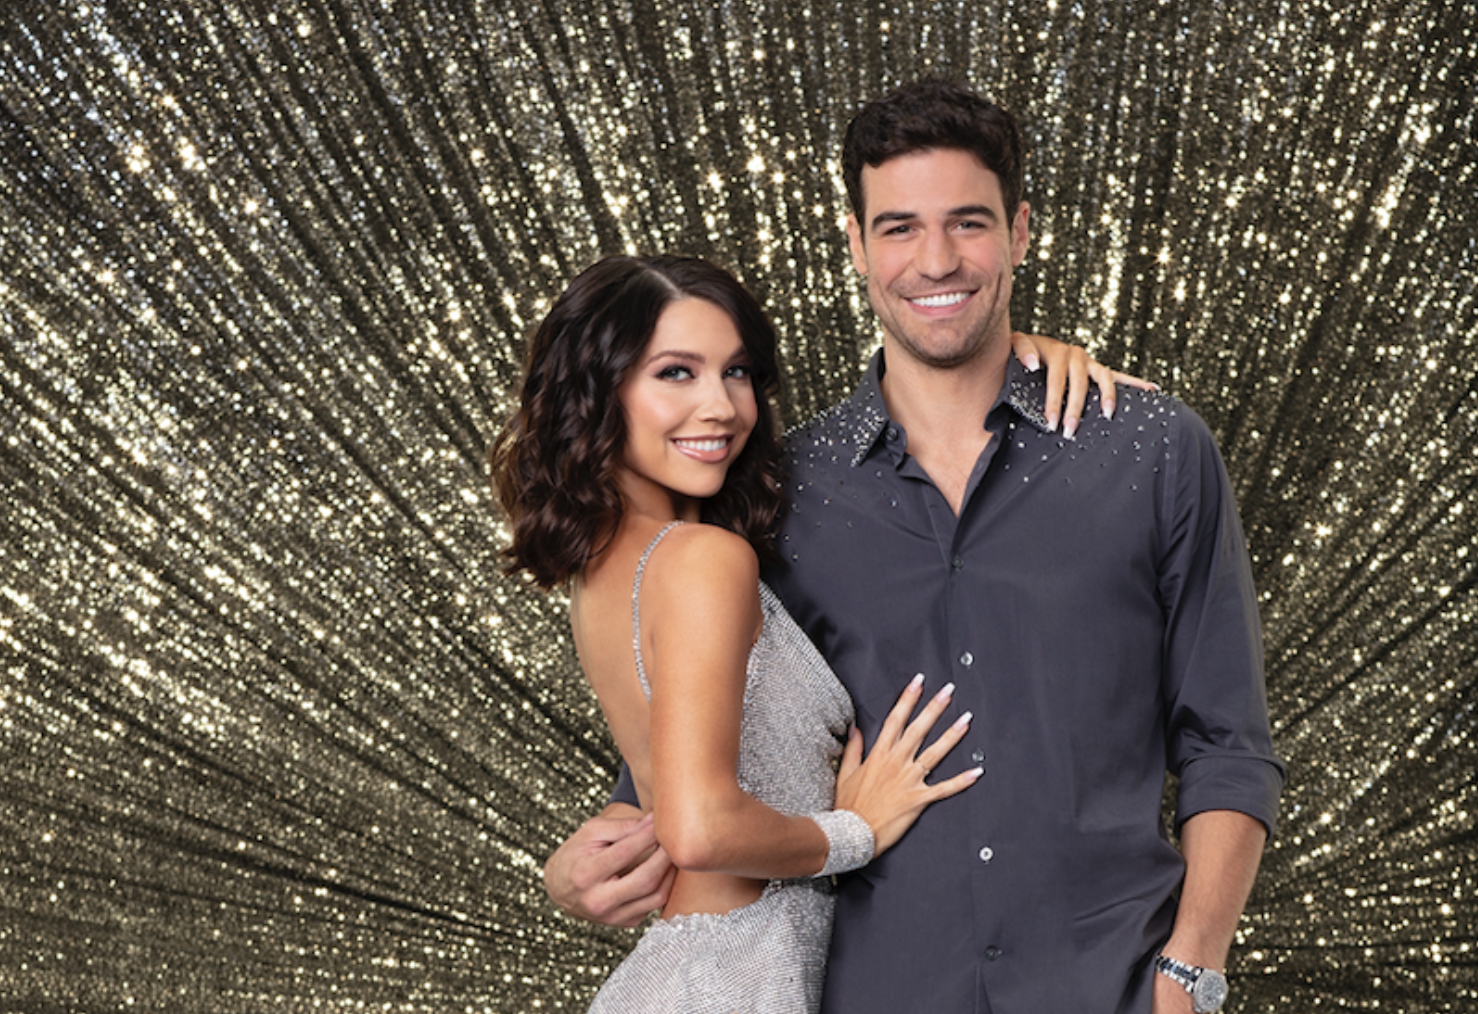 Dancing with the stars couples dating images hd 2018